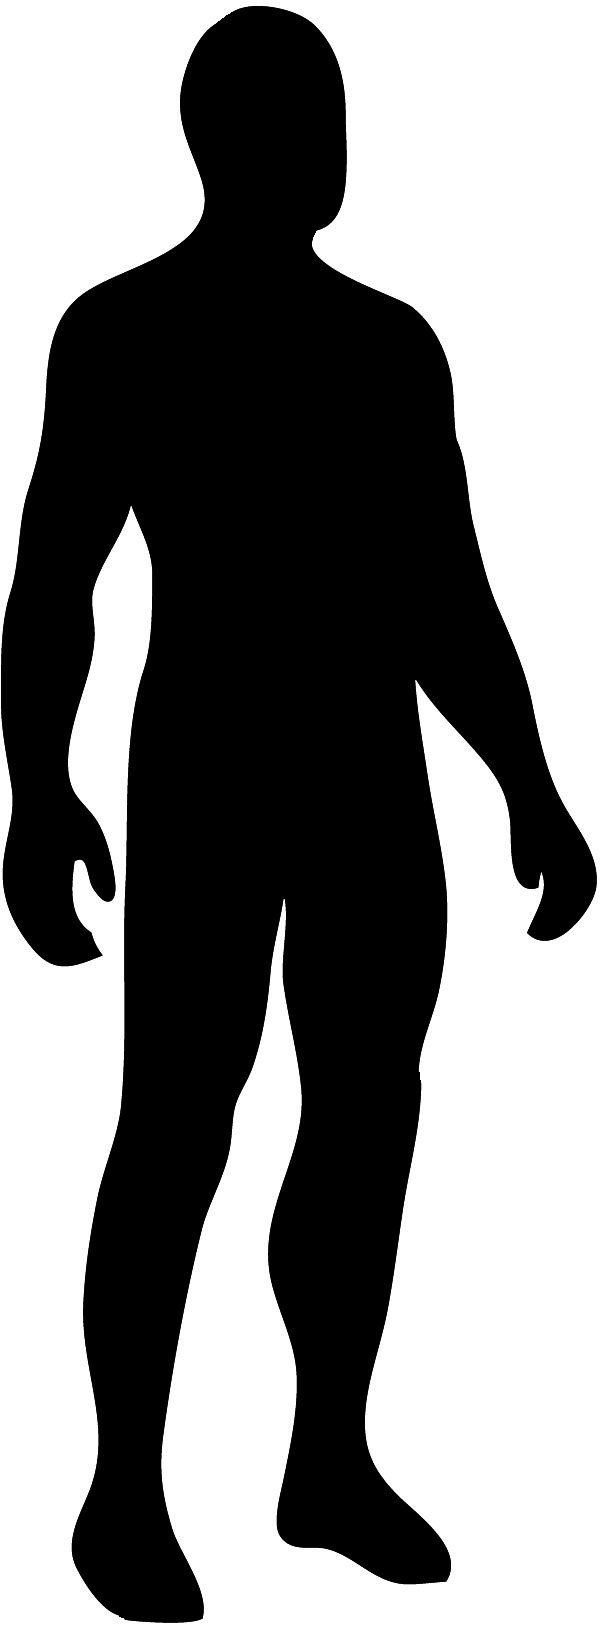 Free Human Body Clipart, Download Free Clip Art, Free Clip.